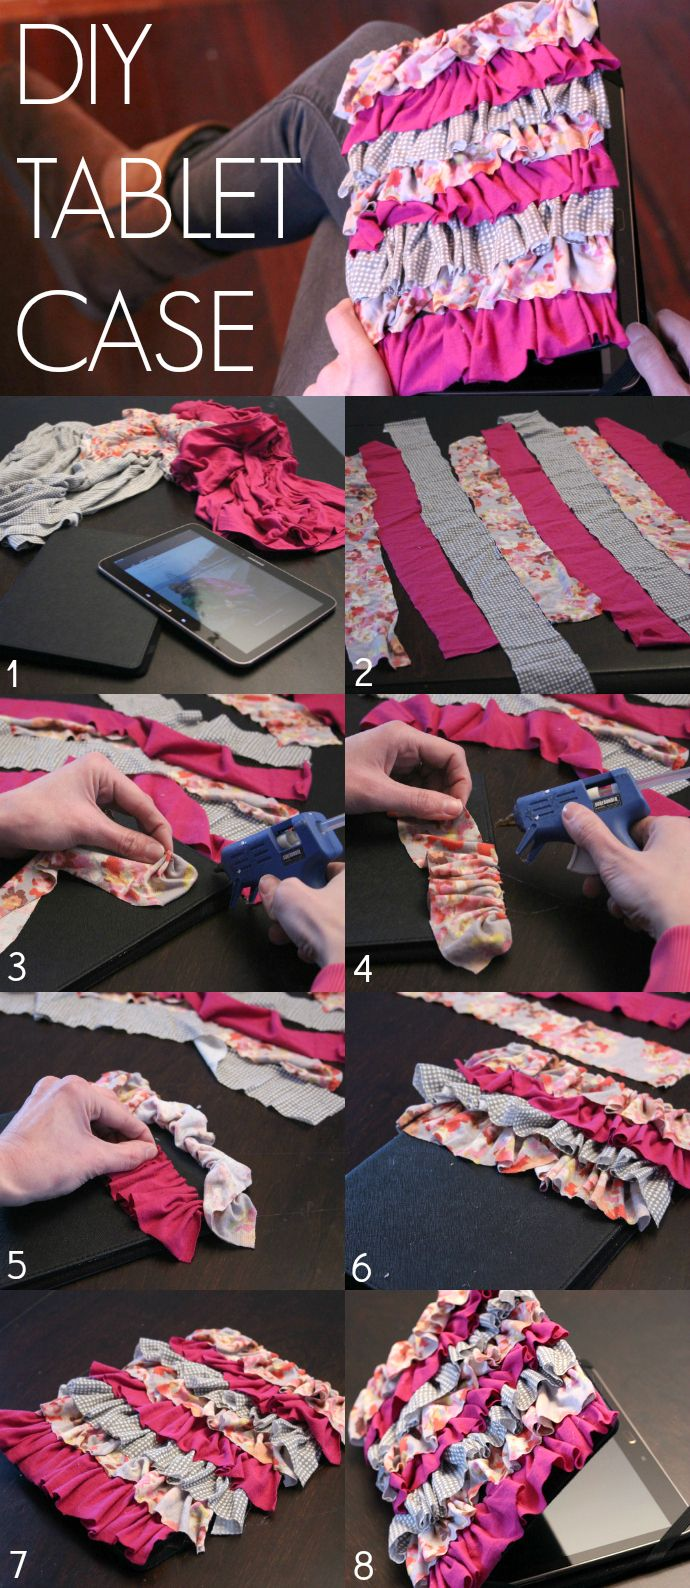 DIY Tablet Case Tutorial Diy craft projects, Diy fashion